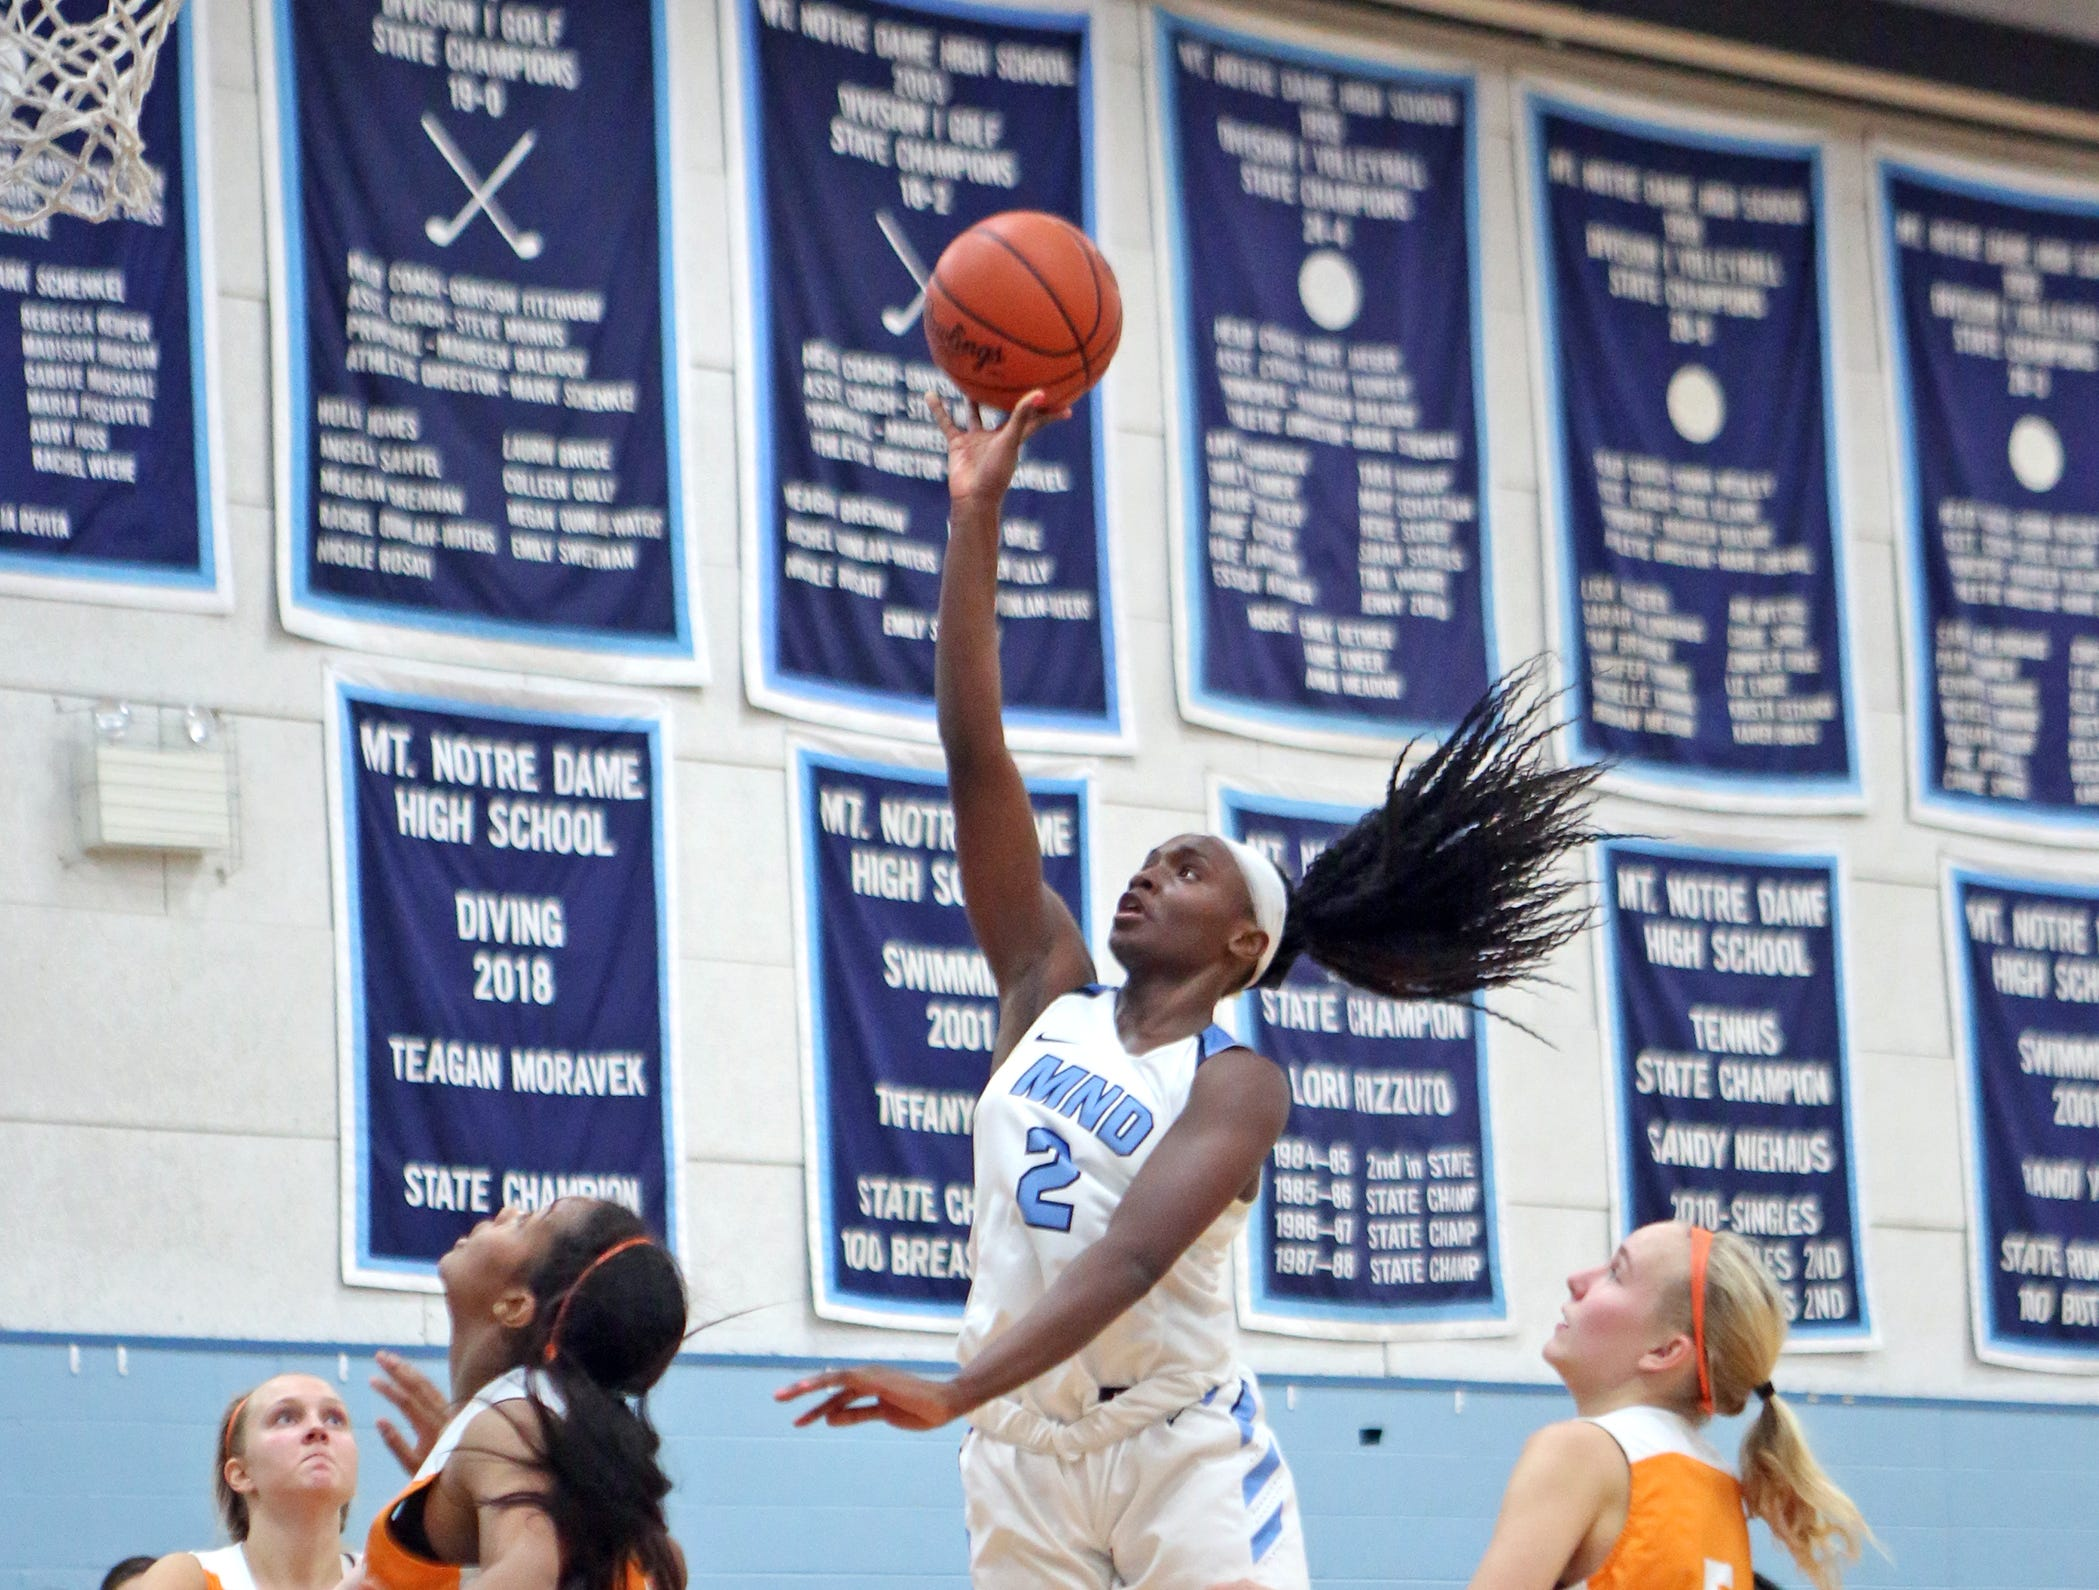 MND freshman guard K.K. Bransford attacks the basket. Mount Notre Dame defeated Mercy-McAuley 53-32.